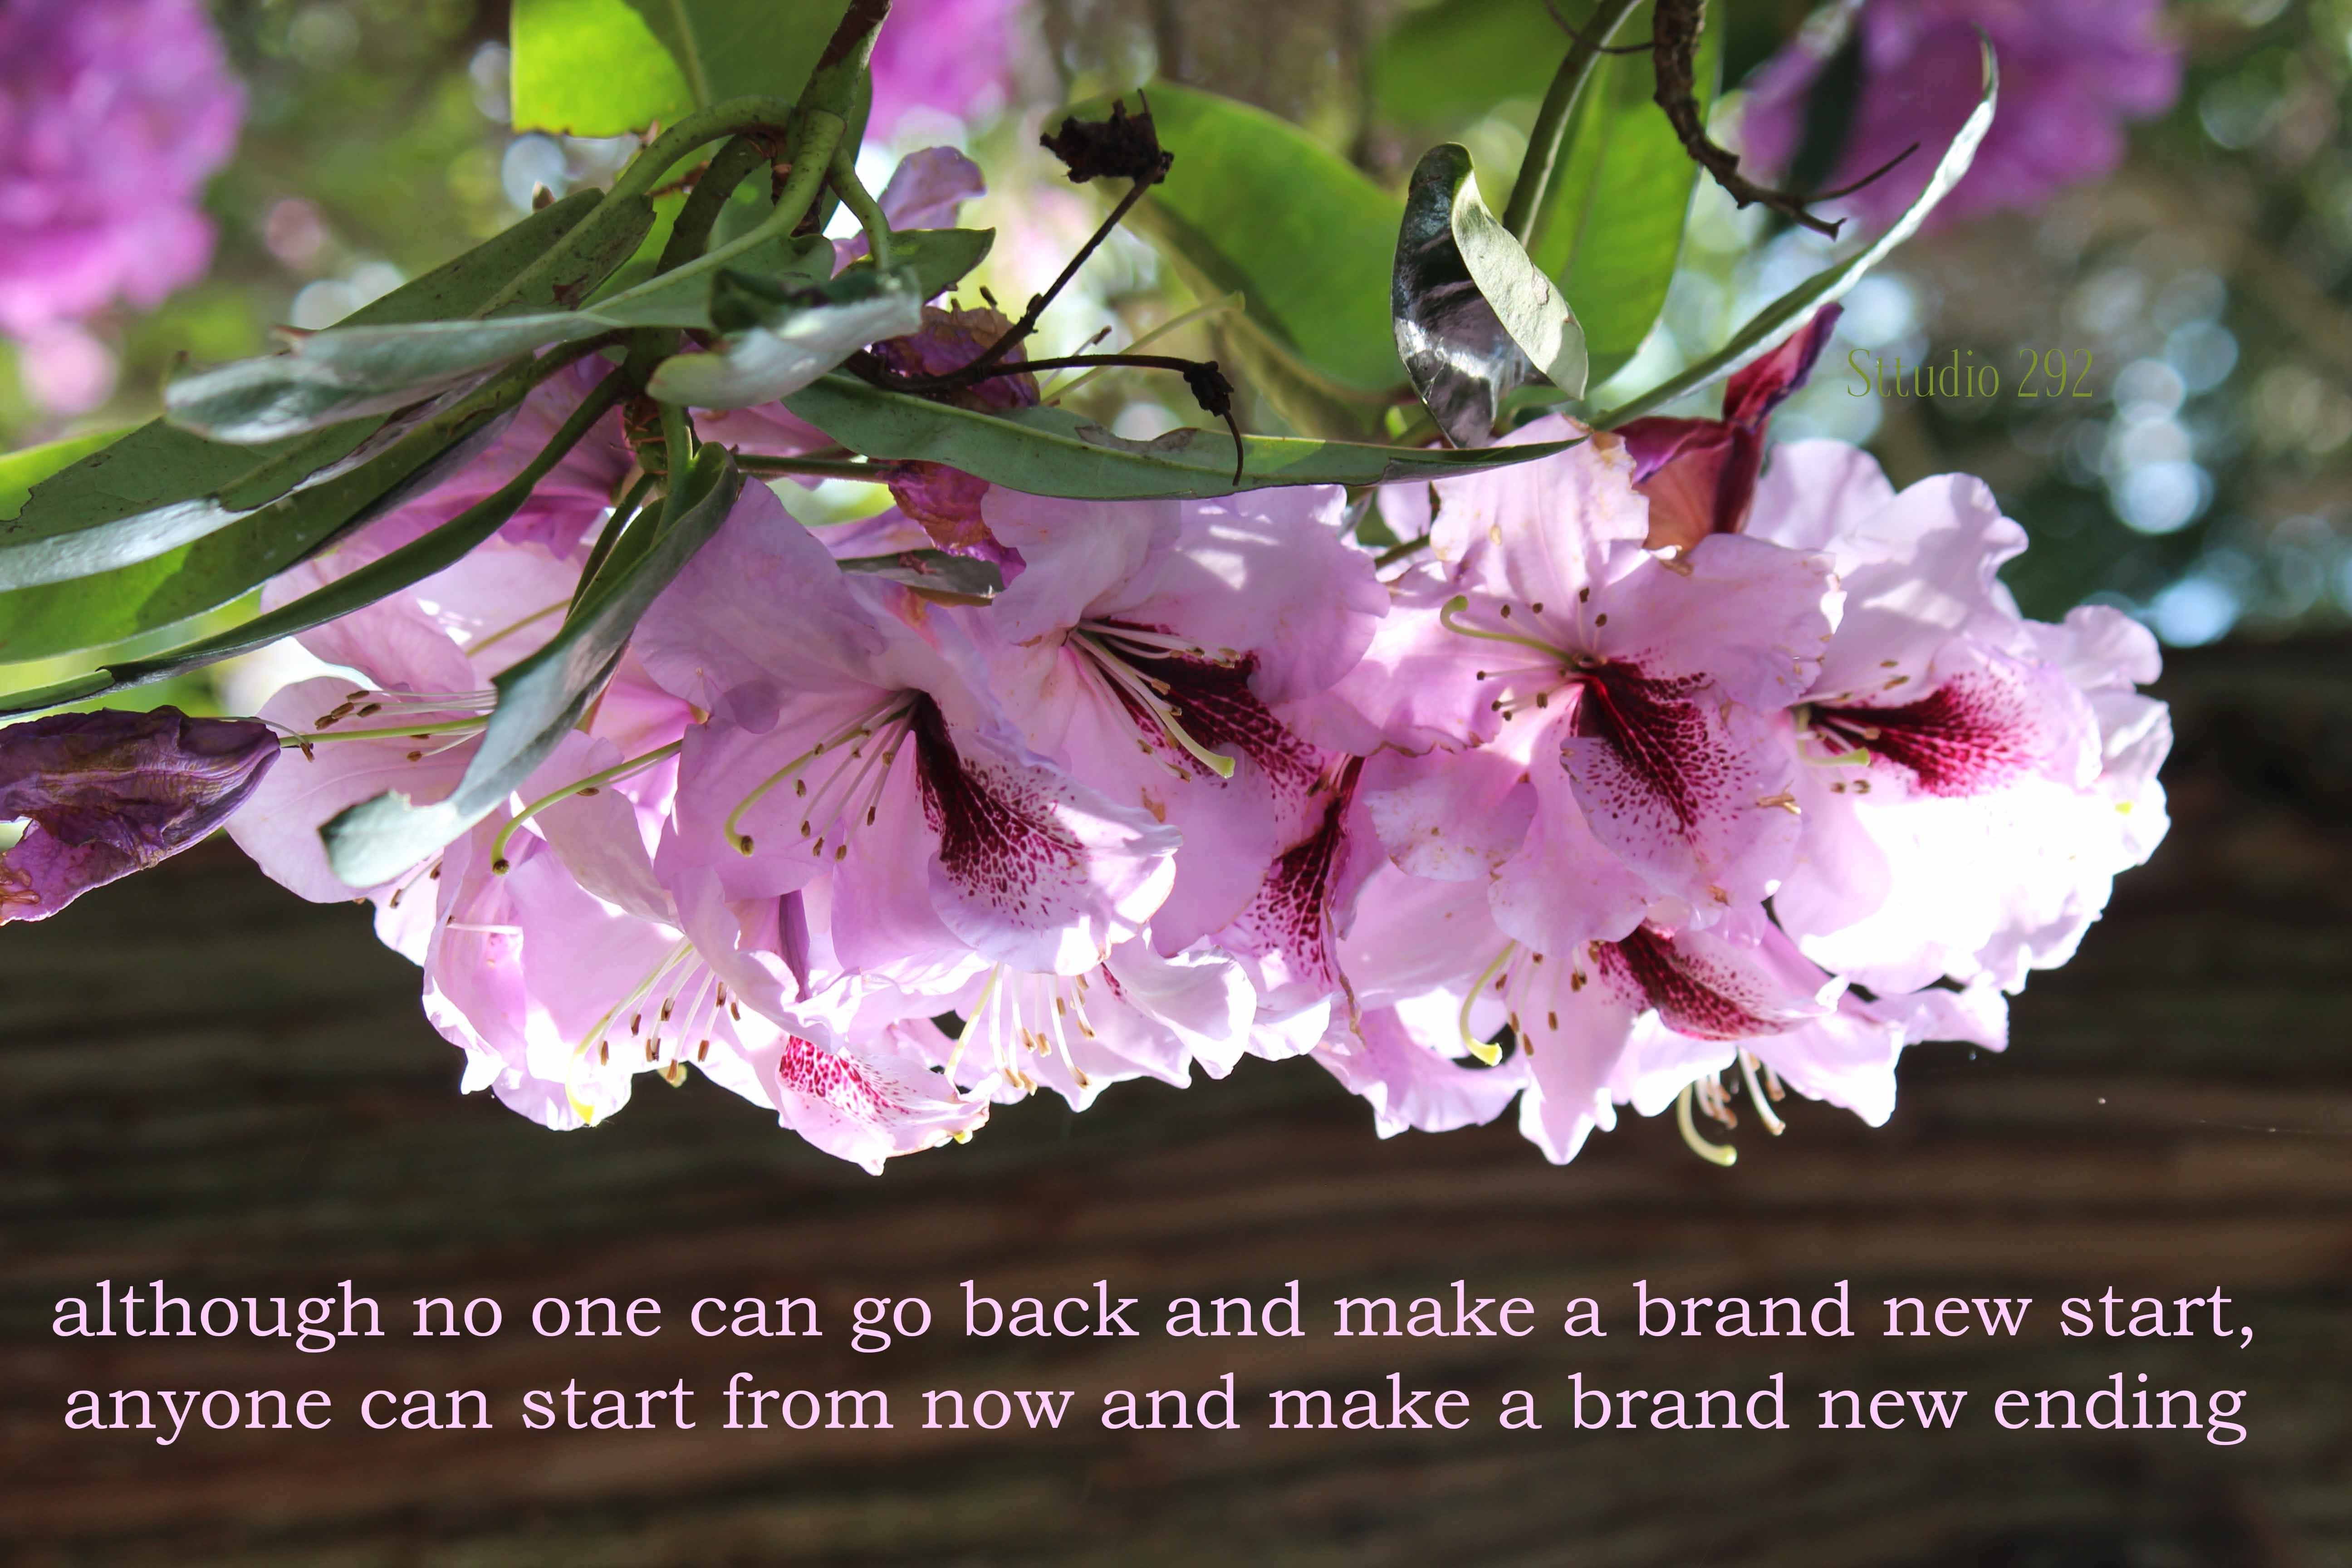 Azalea Flowers Inspirational Quotes For 2018 Beautiful Flowers